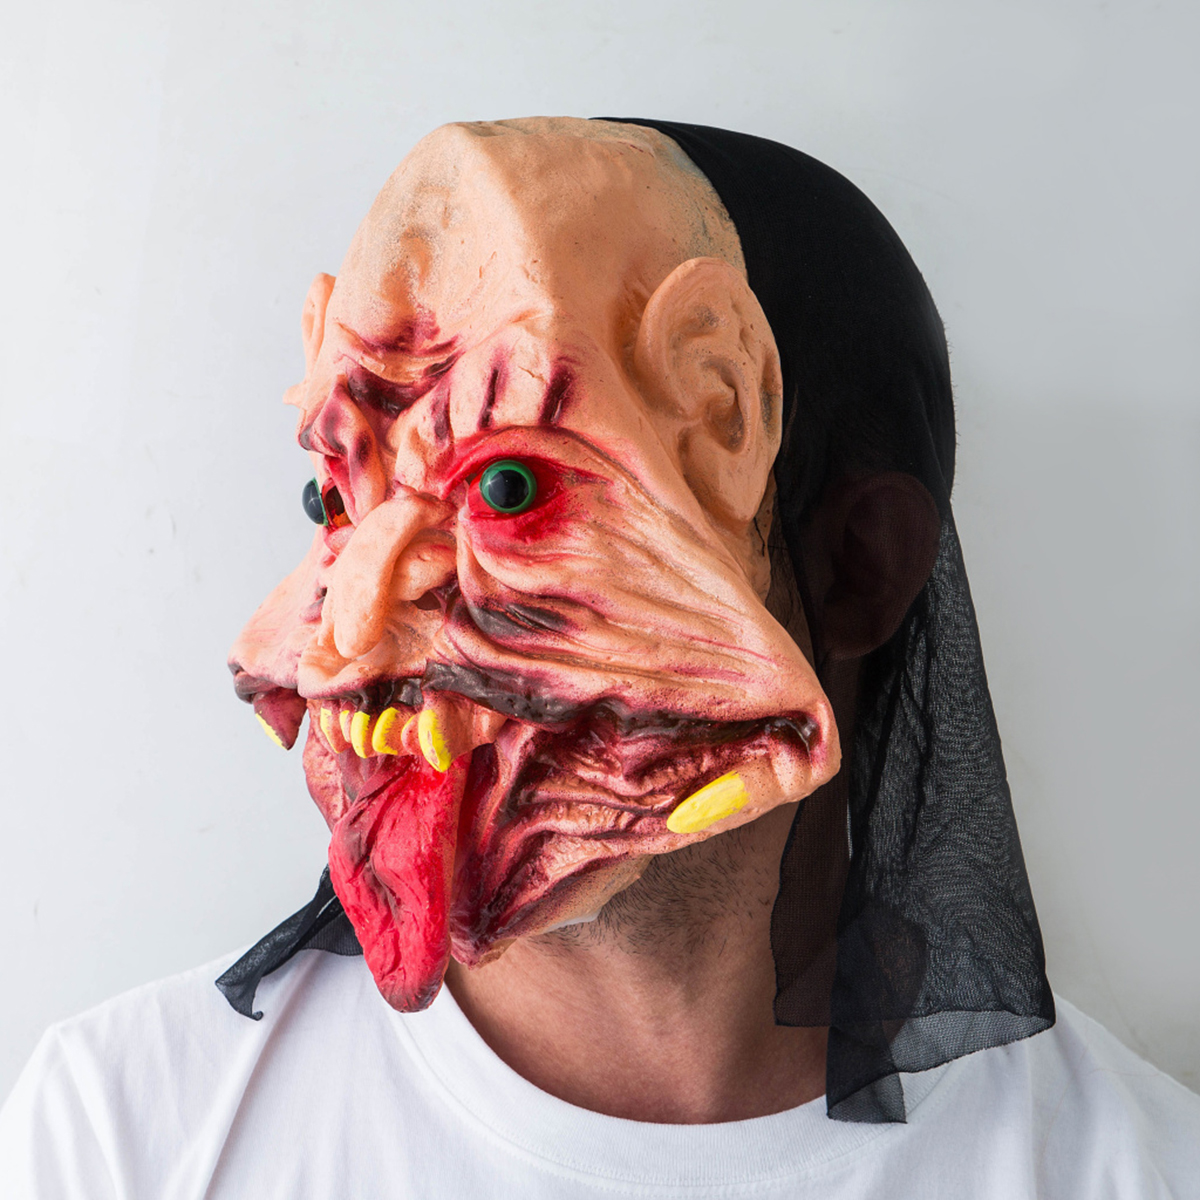 Halloween Festival Party Supplies Scary Mask Horrifying Mask Mask With For Red Tongue Distorted Mouth Creepy Mask 2019